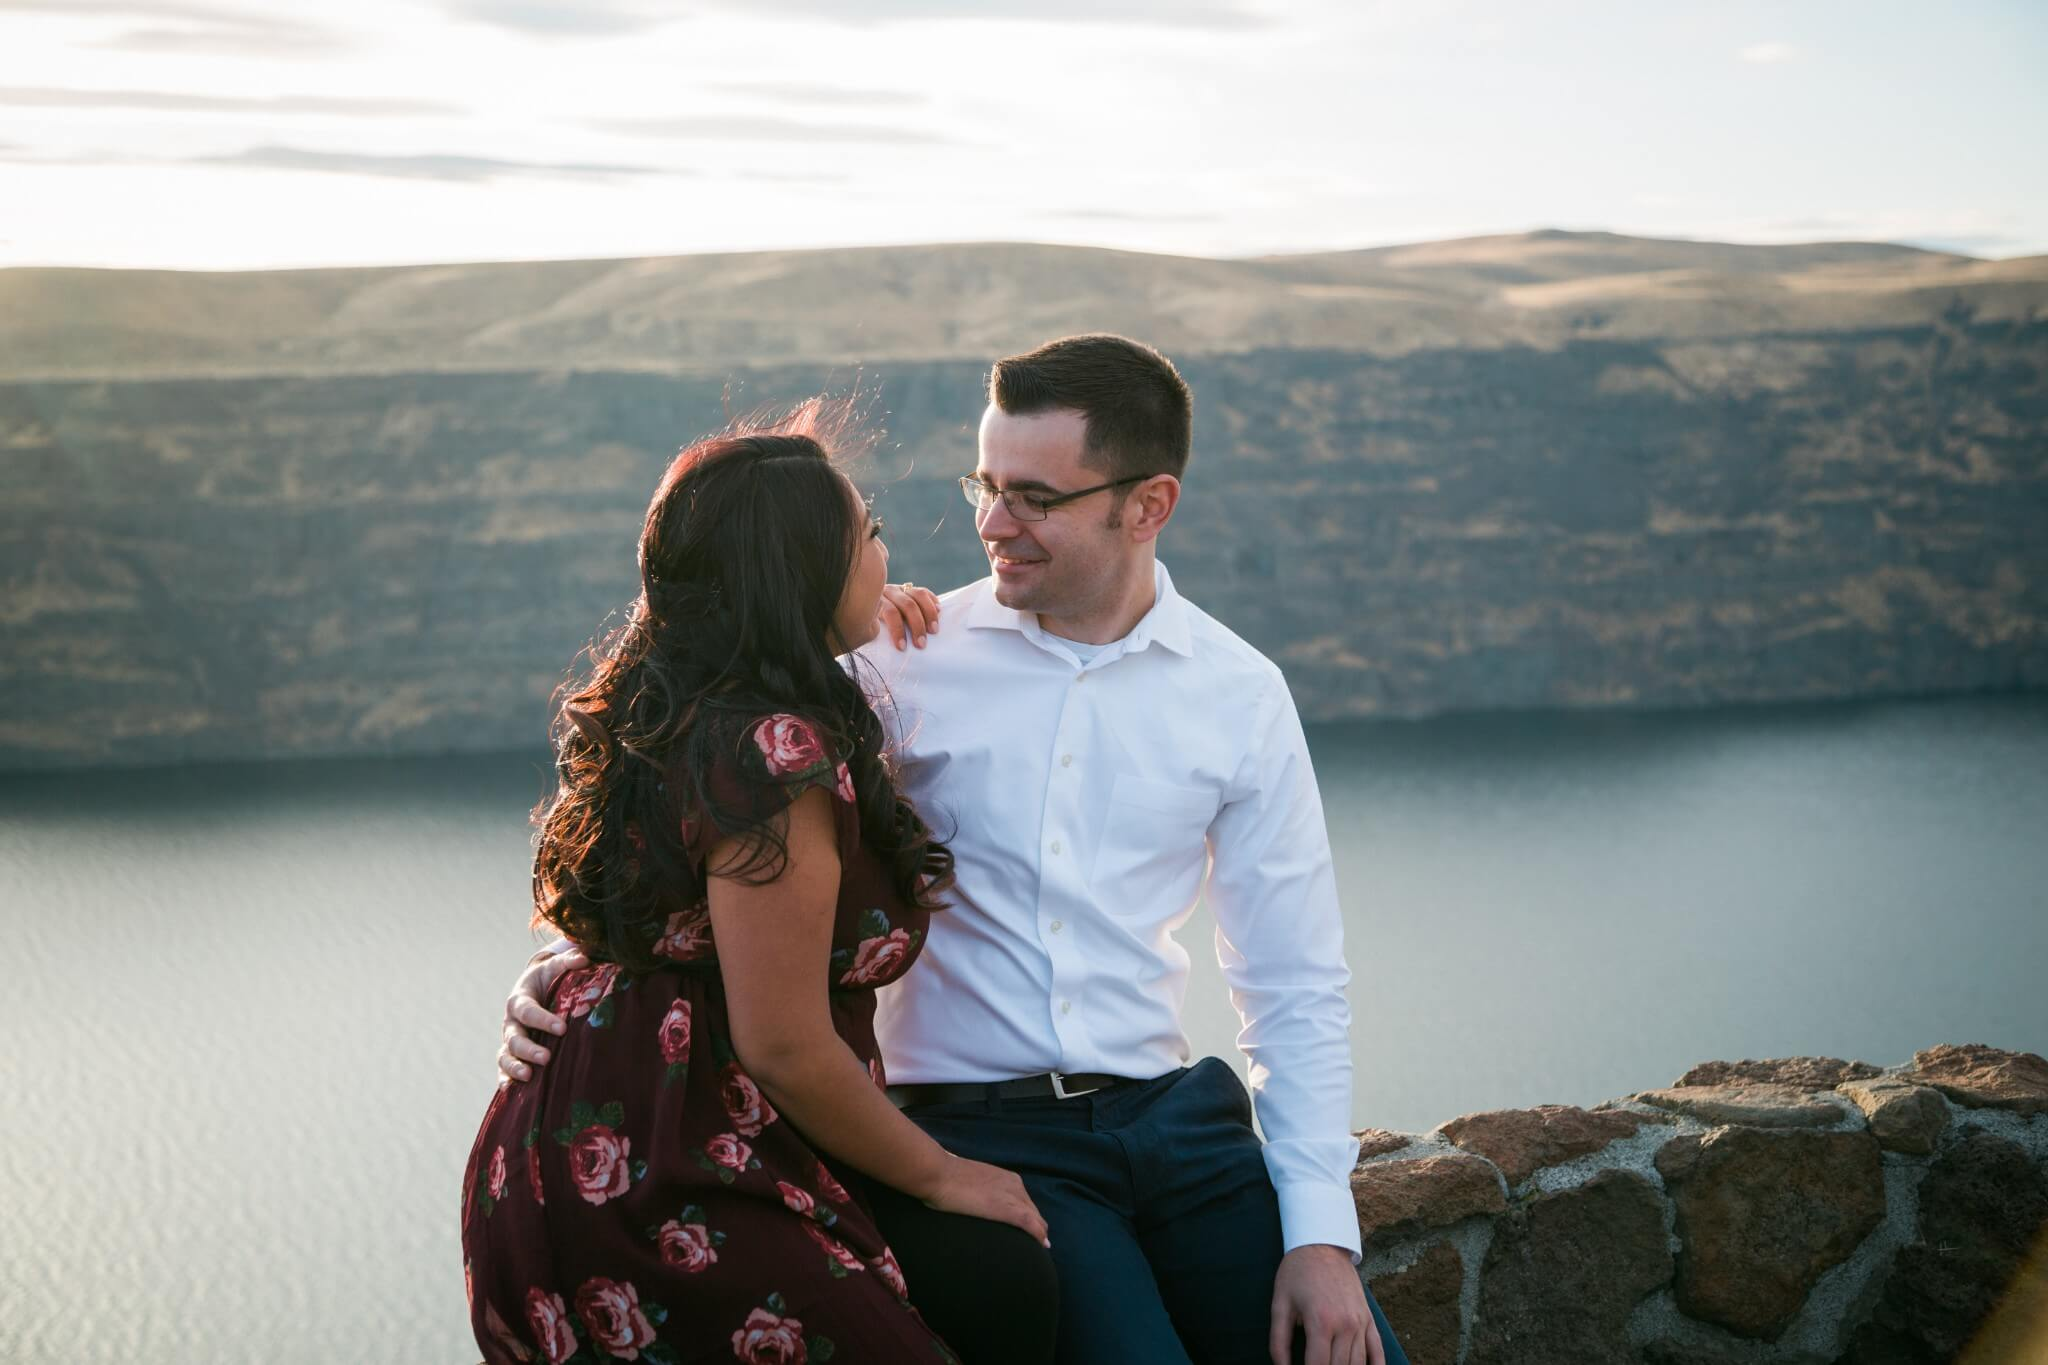 Lesly & Michael Vantage Engagement by Bill Weisgerber Spokane Photographer (26 of 71).jpg